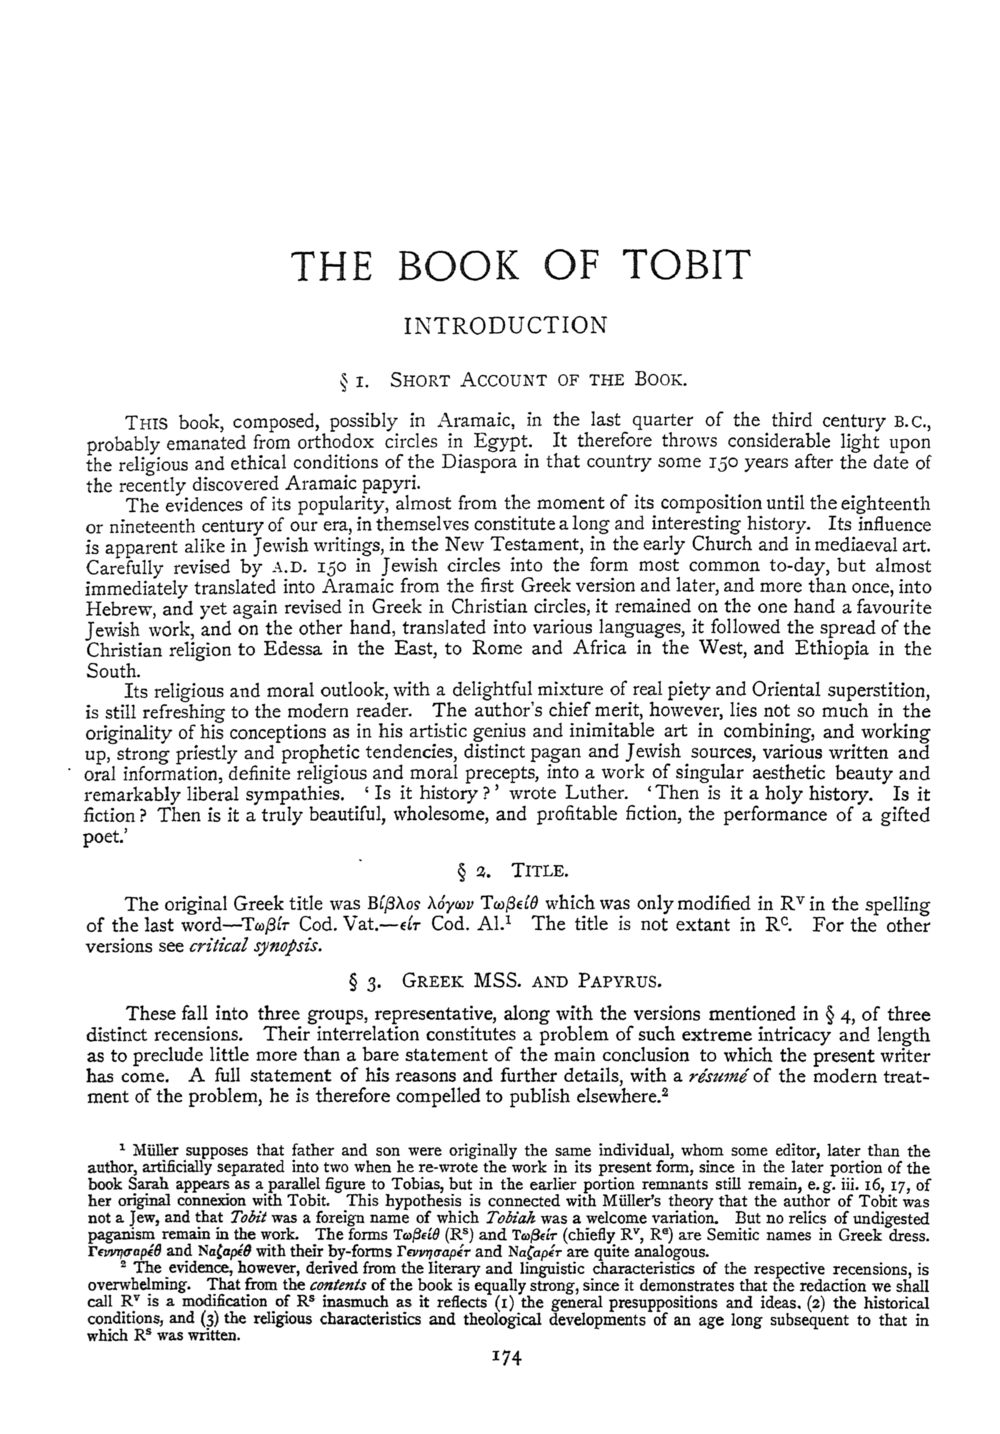 Image of page 174